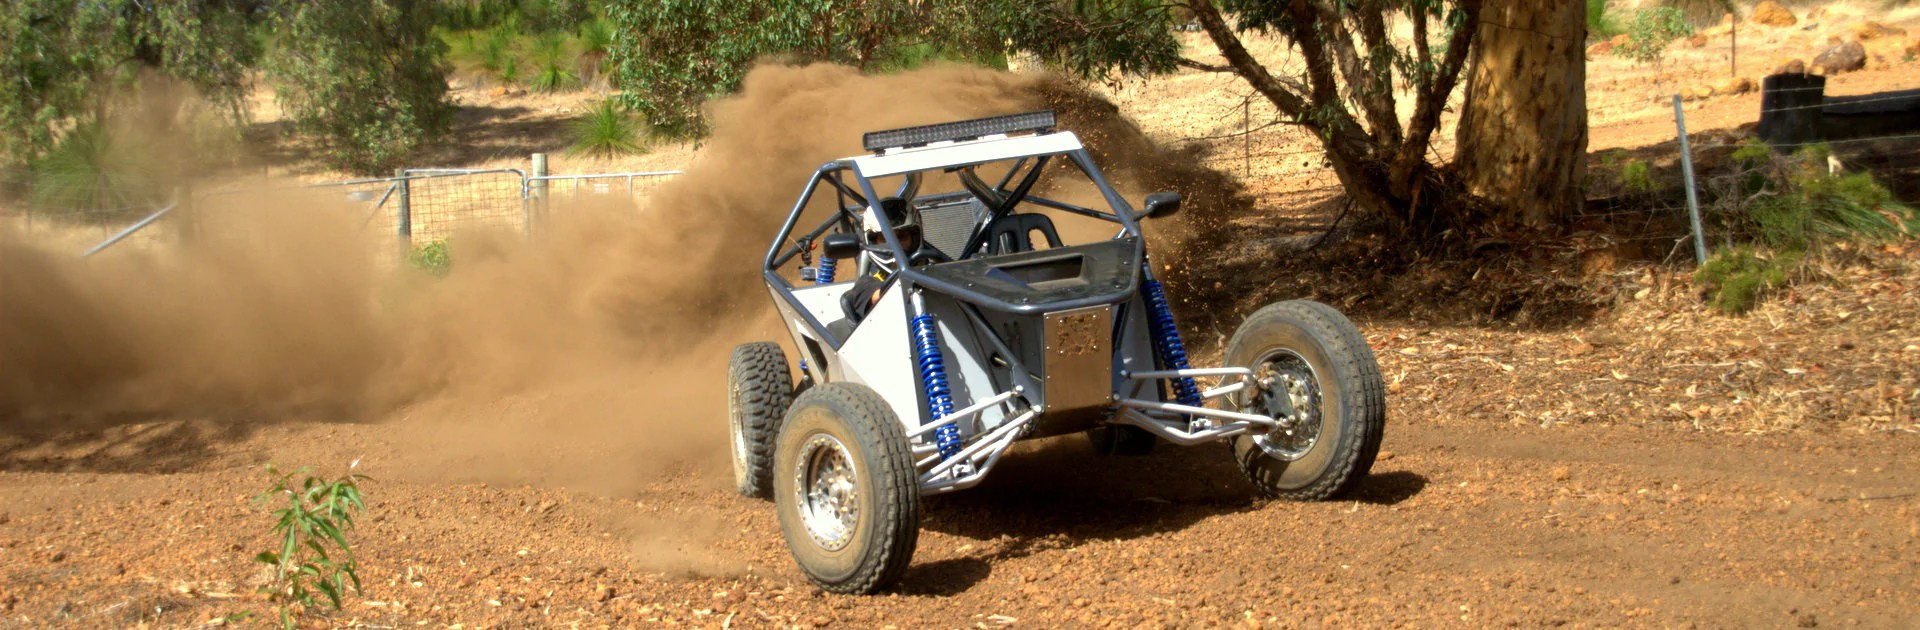 Kart Cross Buggy Build The Edge Products The Edge Products Dune Buggy Plans And